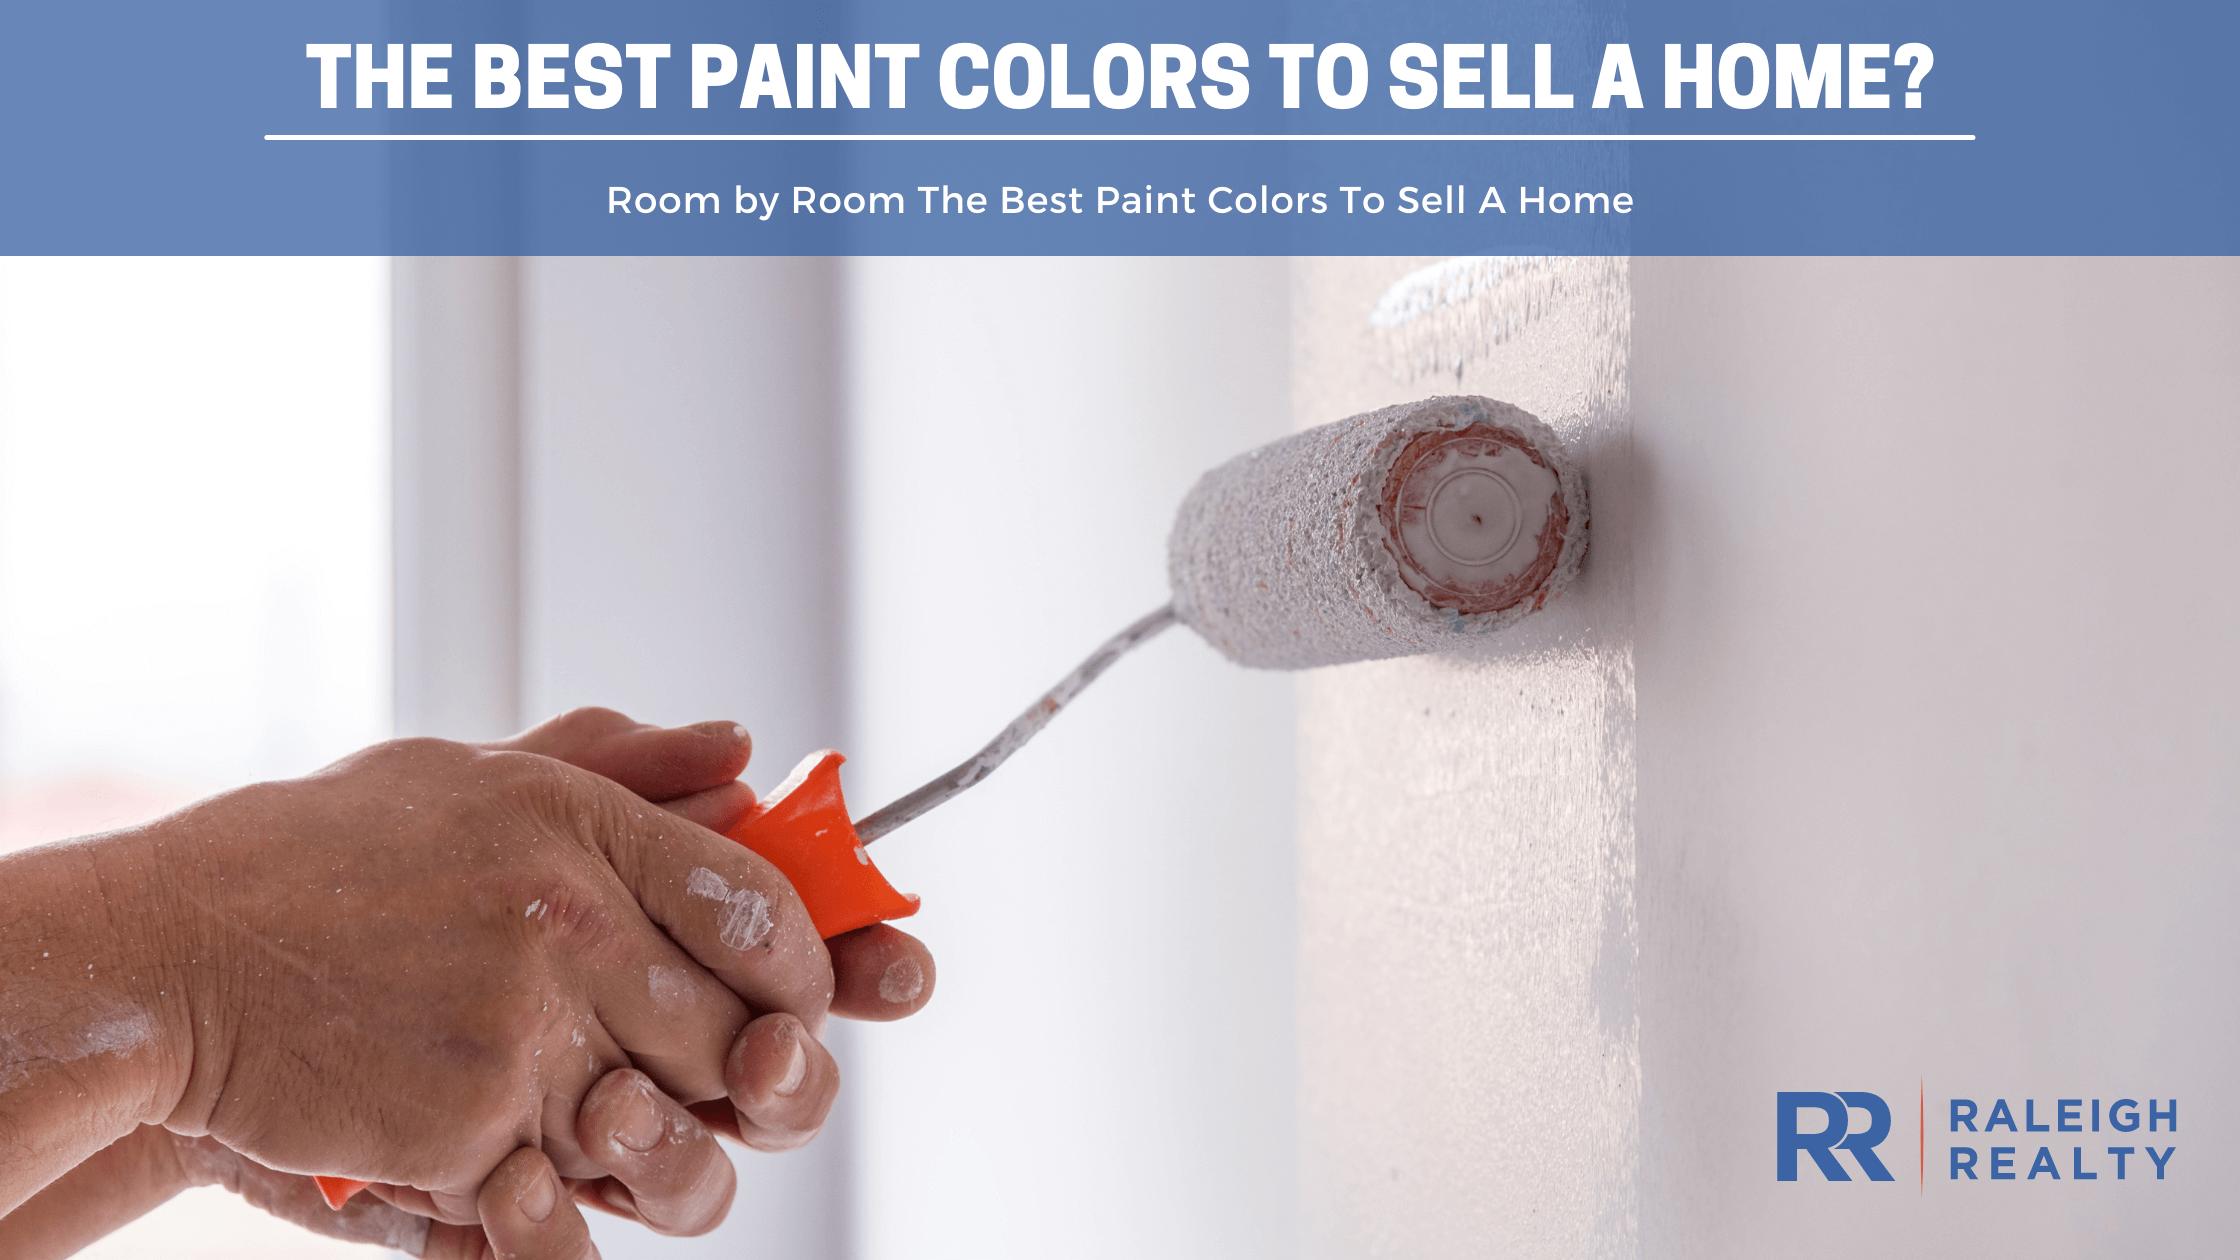 What Are The Best Colors To Paint to Sell a Home - Interior, Exterior and Room by Room Paint Colors